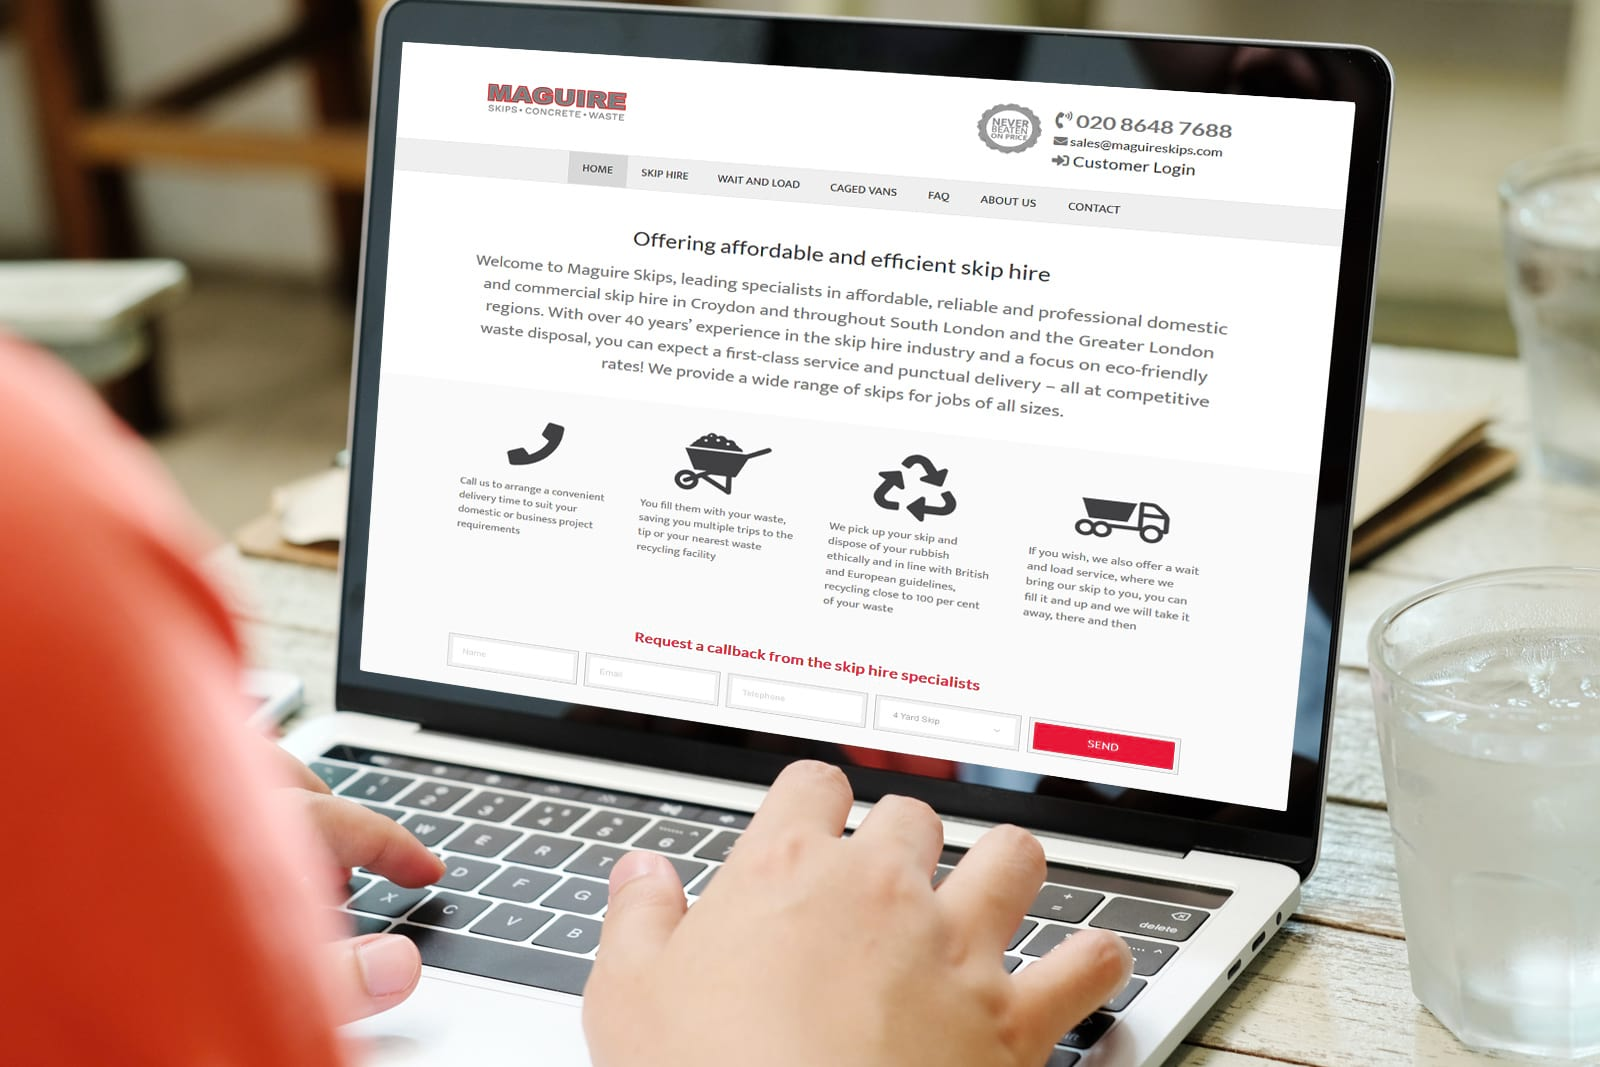 Maguire Skips website builders - JJ Solutions based in Surrey